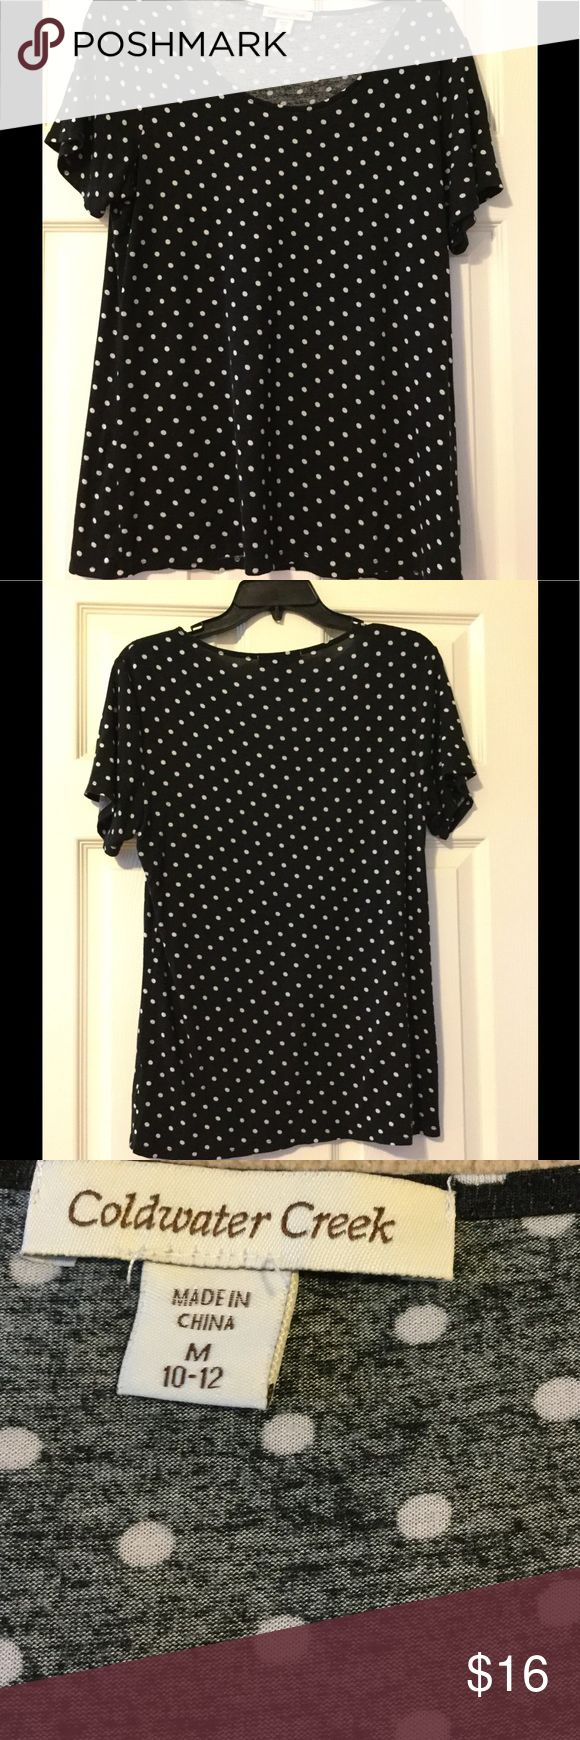 Black and white polka dot top This cute shirt is very soft and flowy.  Black with polka dots and short sleeved. Coldwater Creek Tops Tees - Short Sleeve